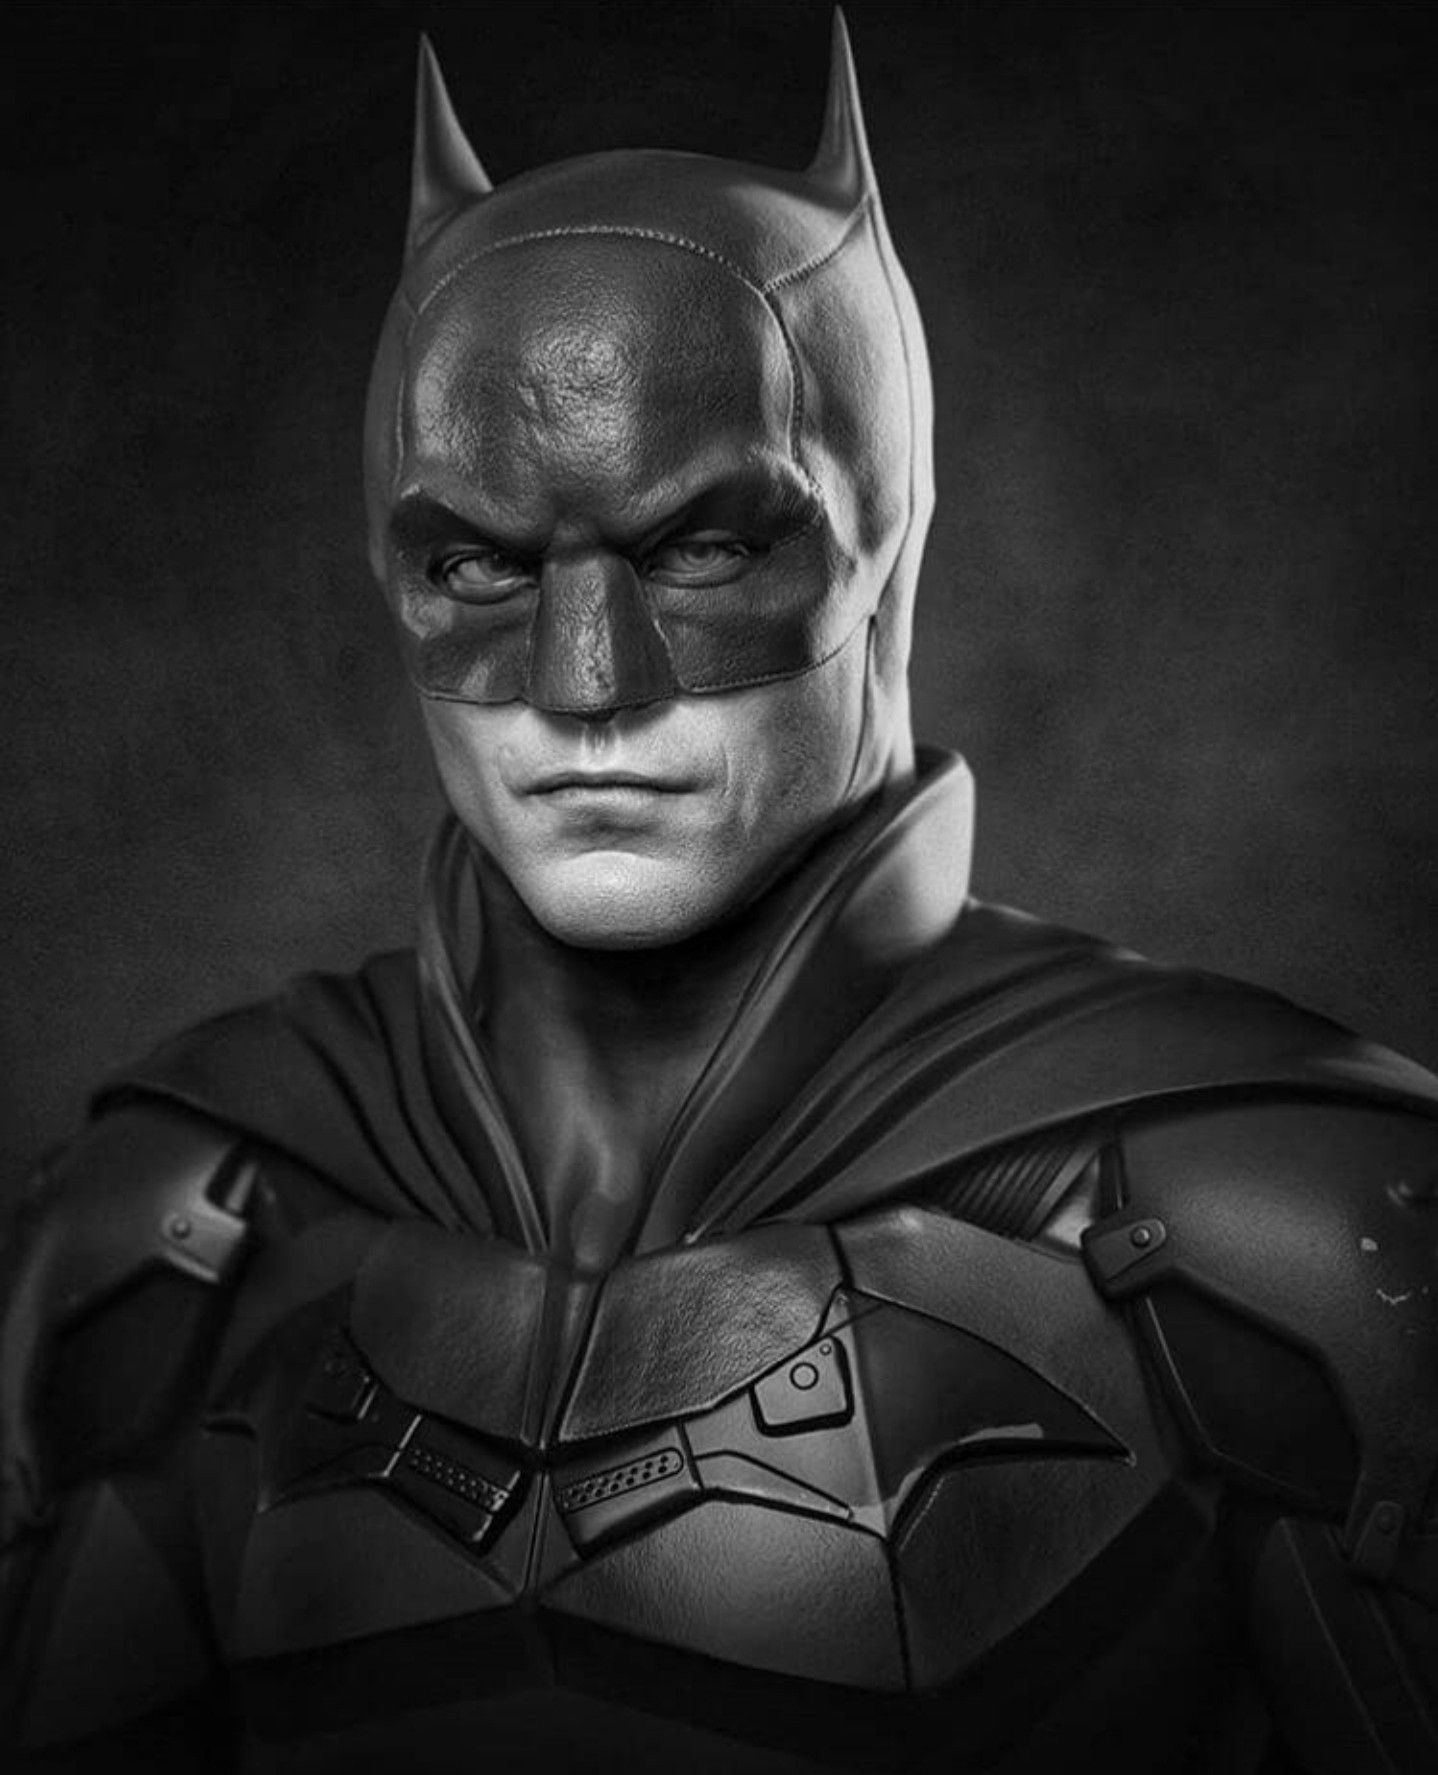 Fan made but I like the look of the cowl in 2020 Batman